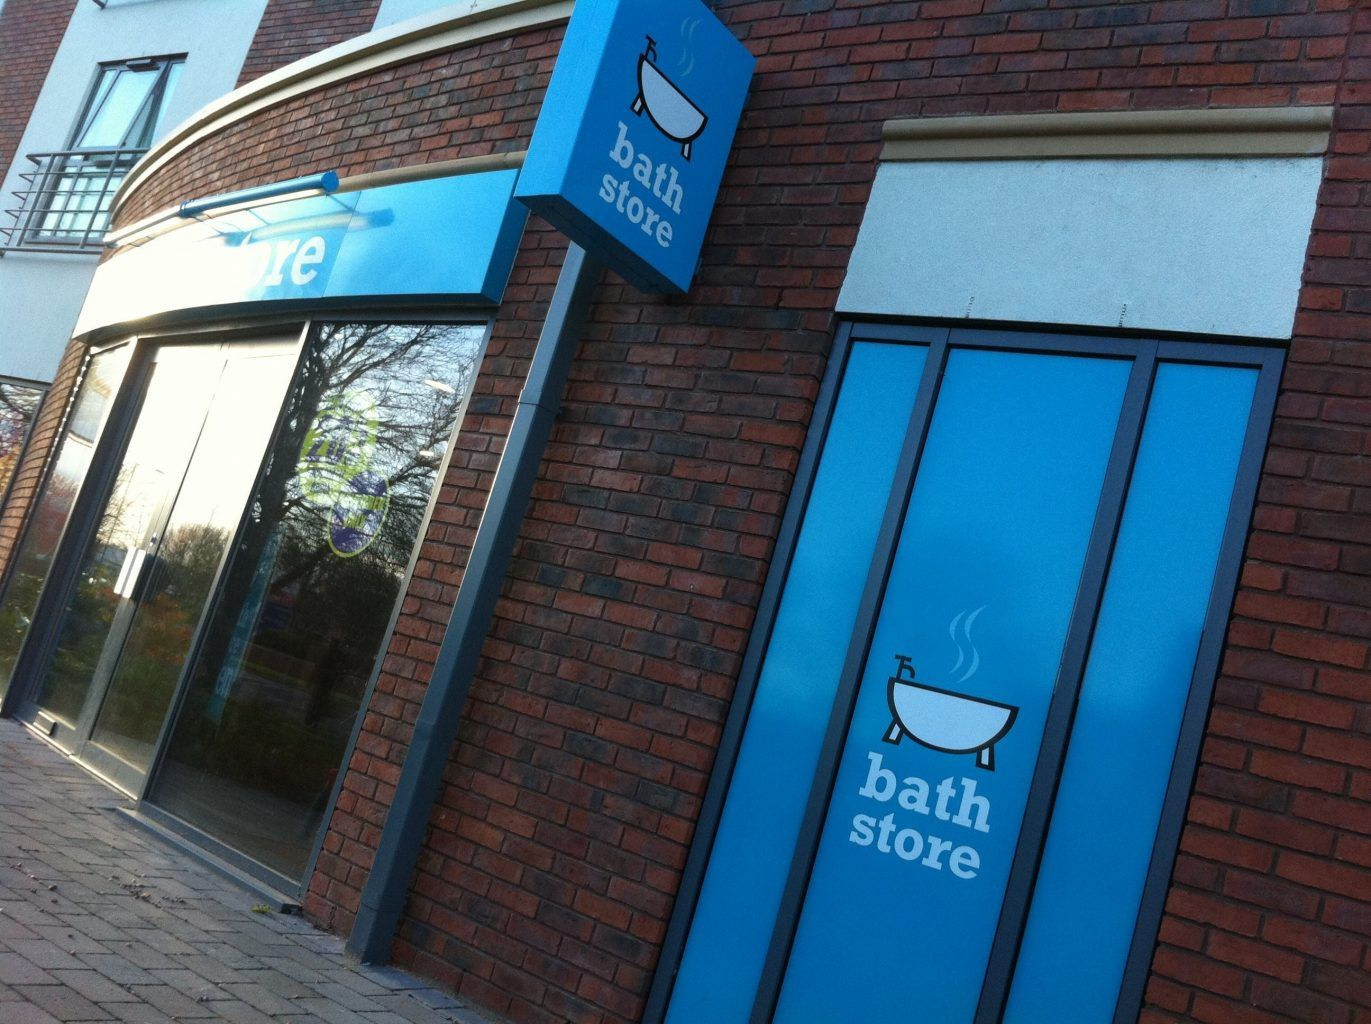 Bathstore Full Colour Digitally Printed Window Graphics